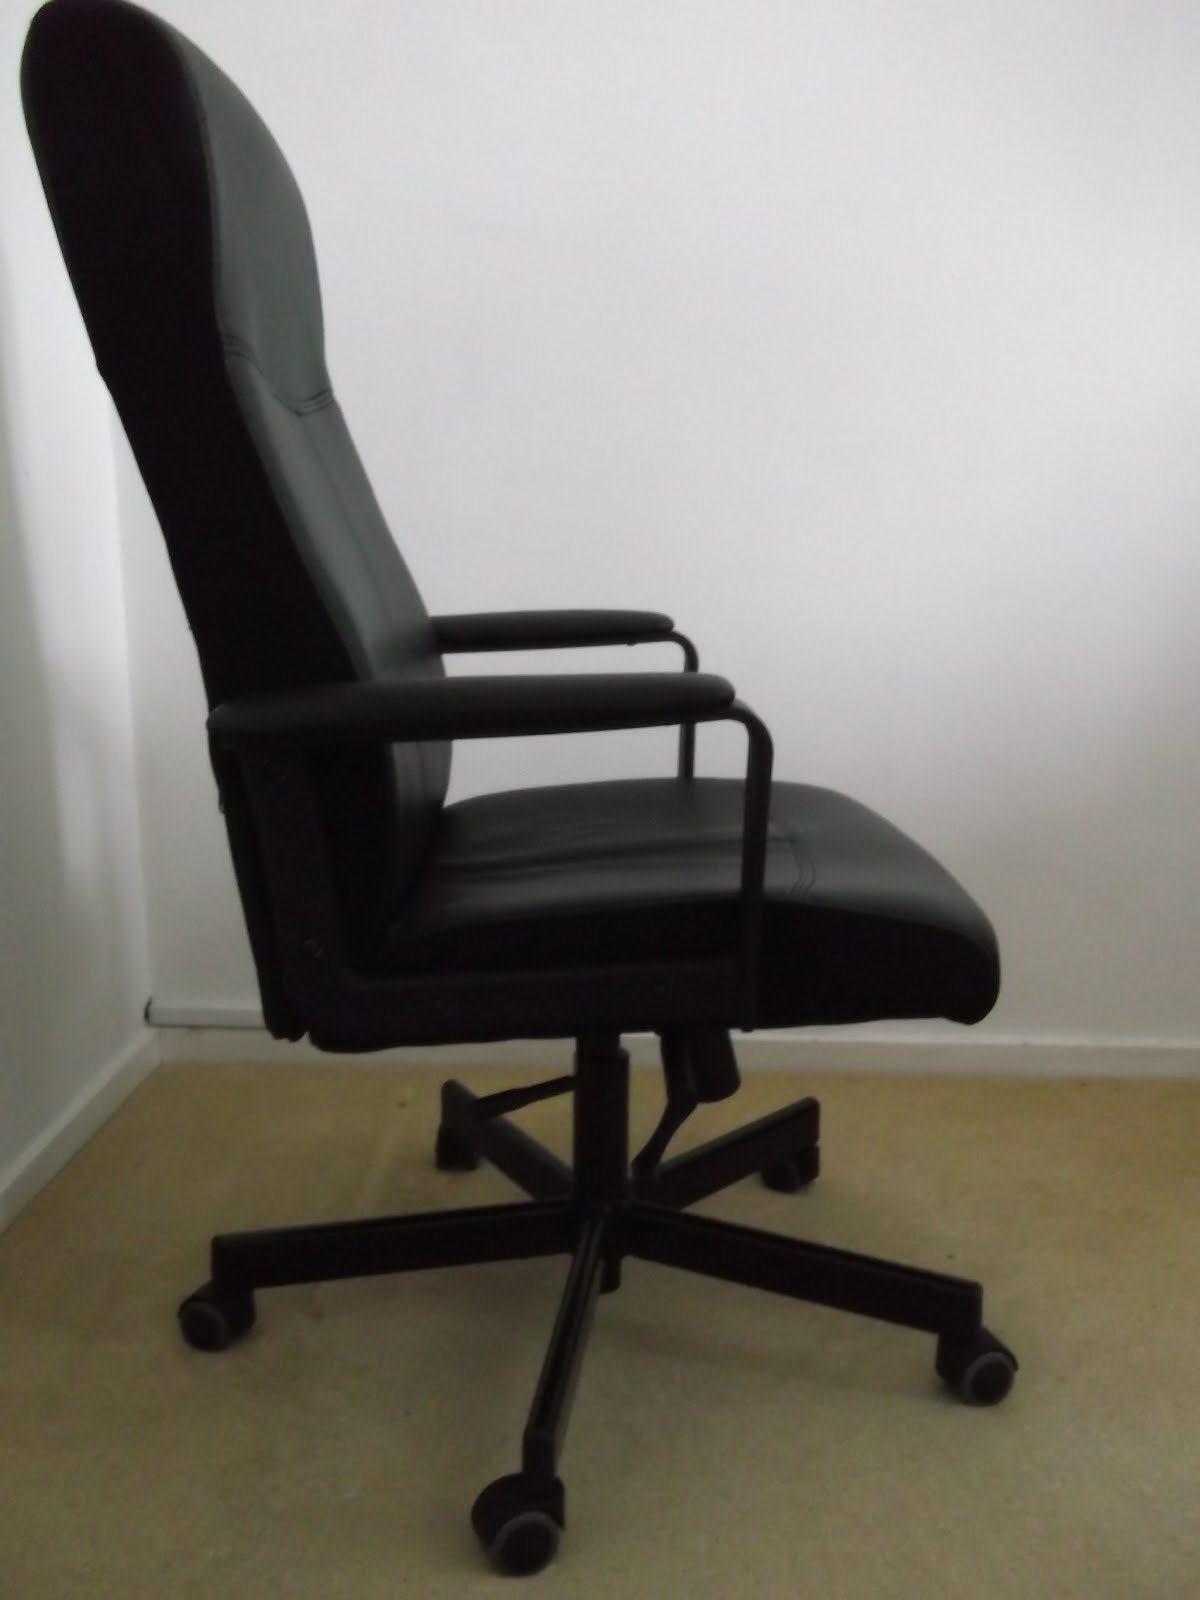 Ikea Desk Chair Consumer Review Ikea Office Chair Review Ikea Malkolm Chair